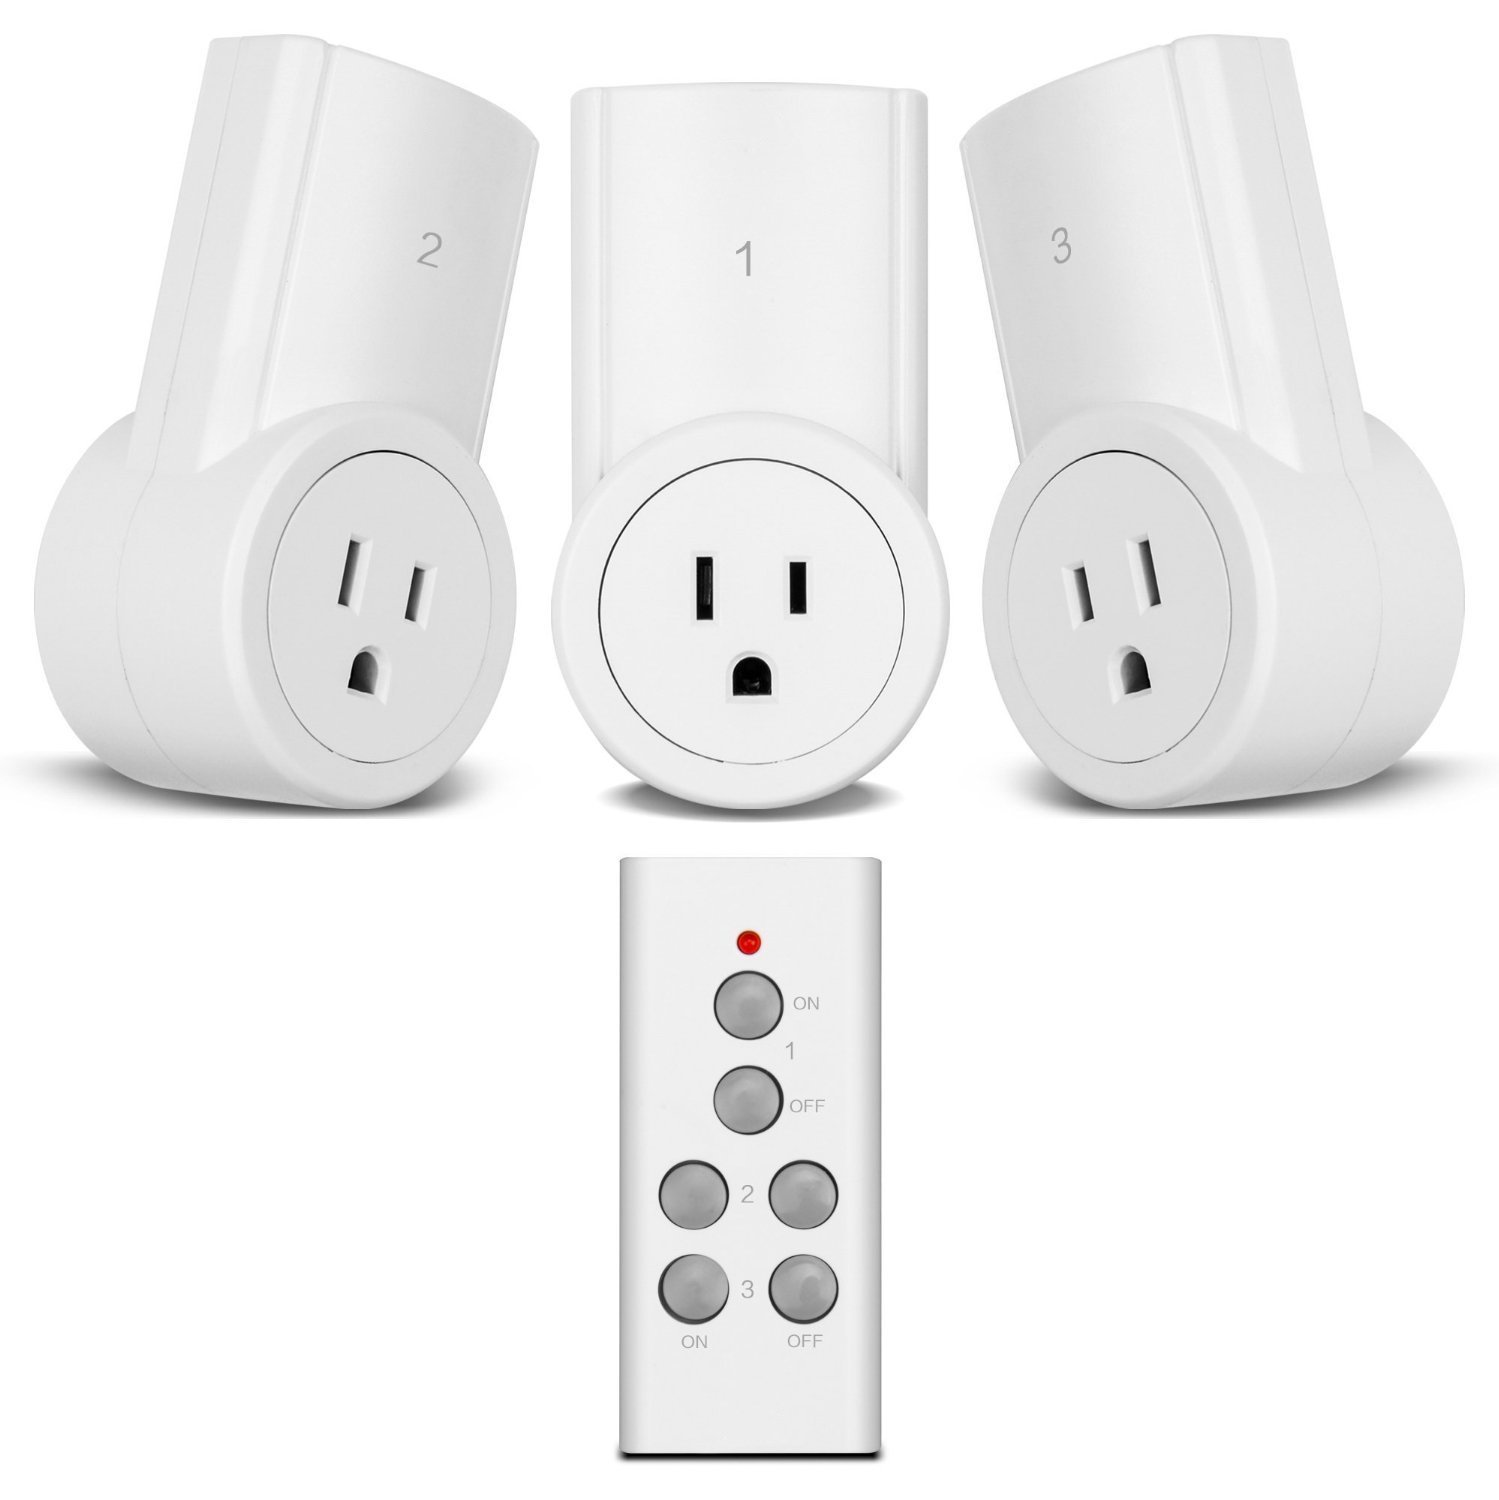 Etekcity Remote Control Outlet Wireless Light Switch for Household Appliances, Unlimited Connections, FCC ETL Listed, White (3Rx-1Tx)